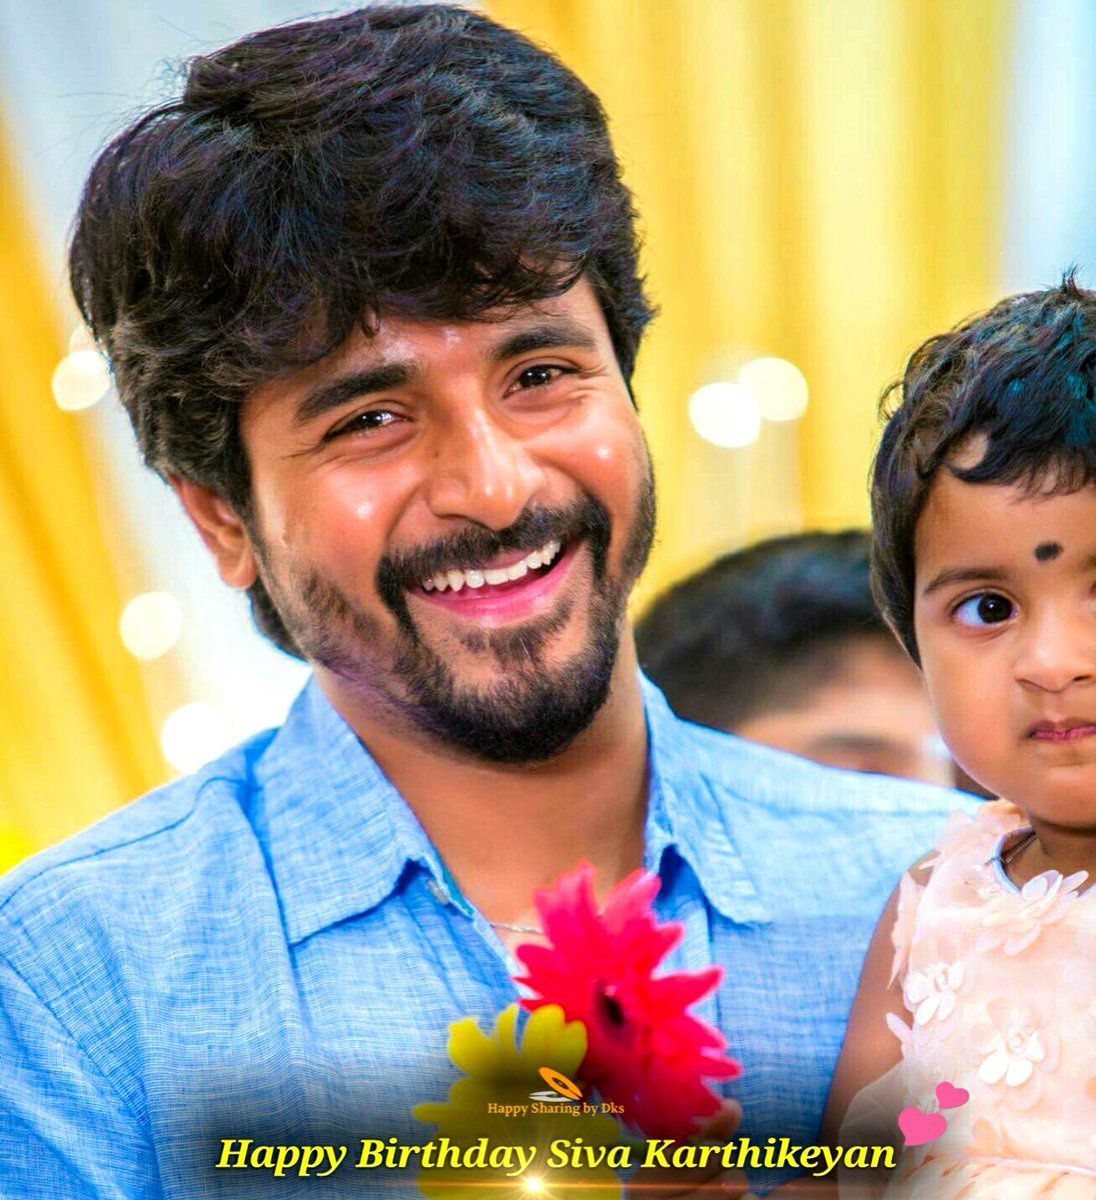 HAPPY BIRTHDAY SIVA KARTHIKEYAN !